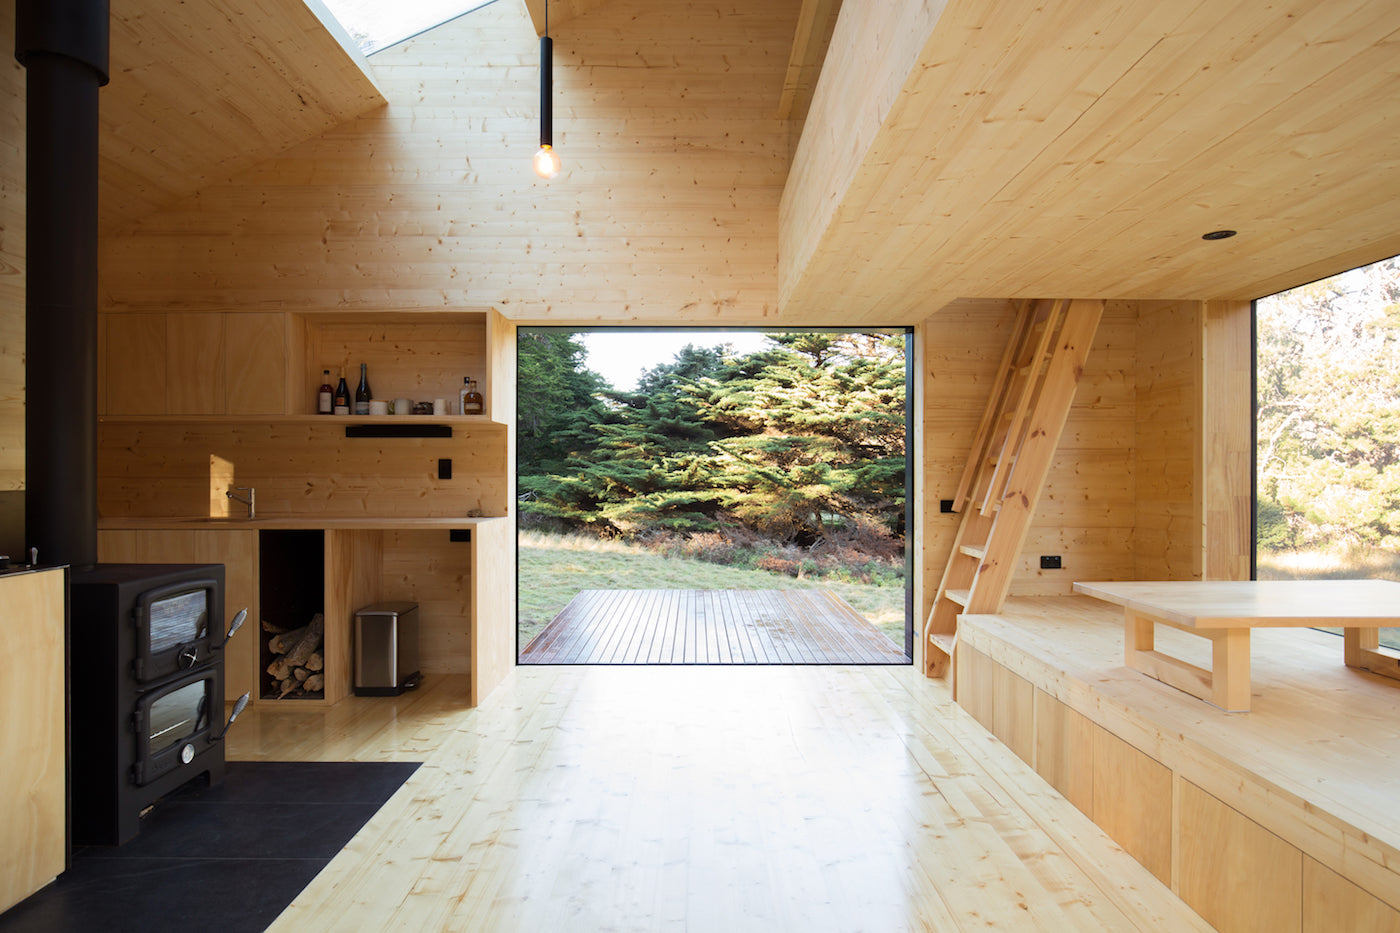 A Cabin Design That Combines Japanese Aesthetics and the ...